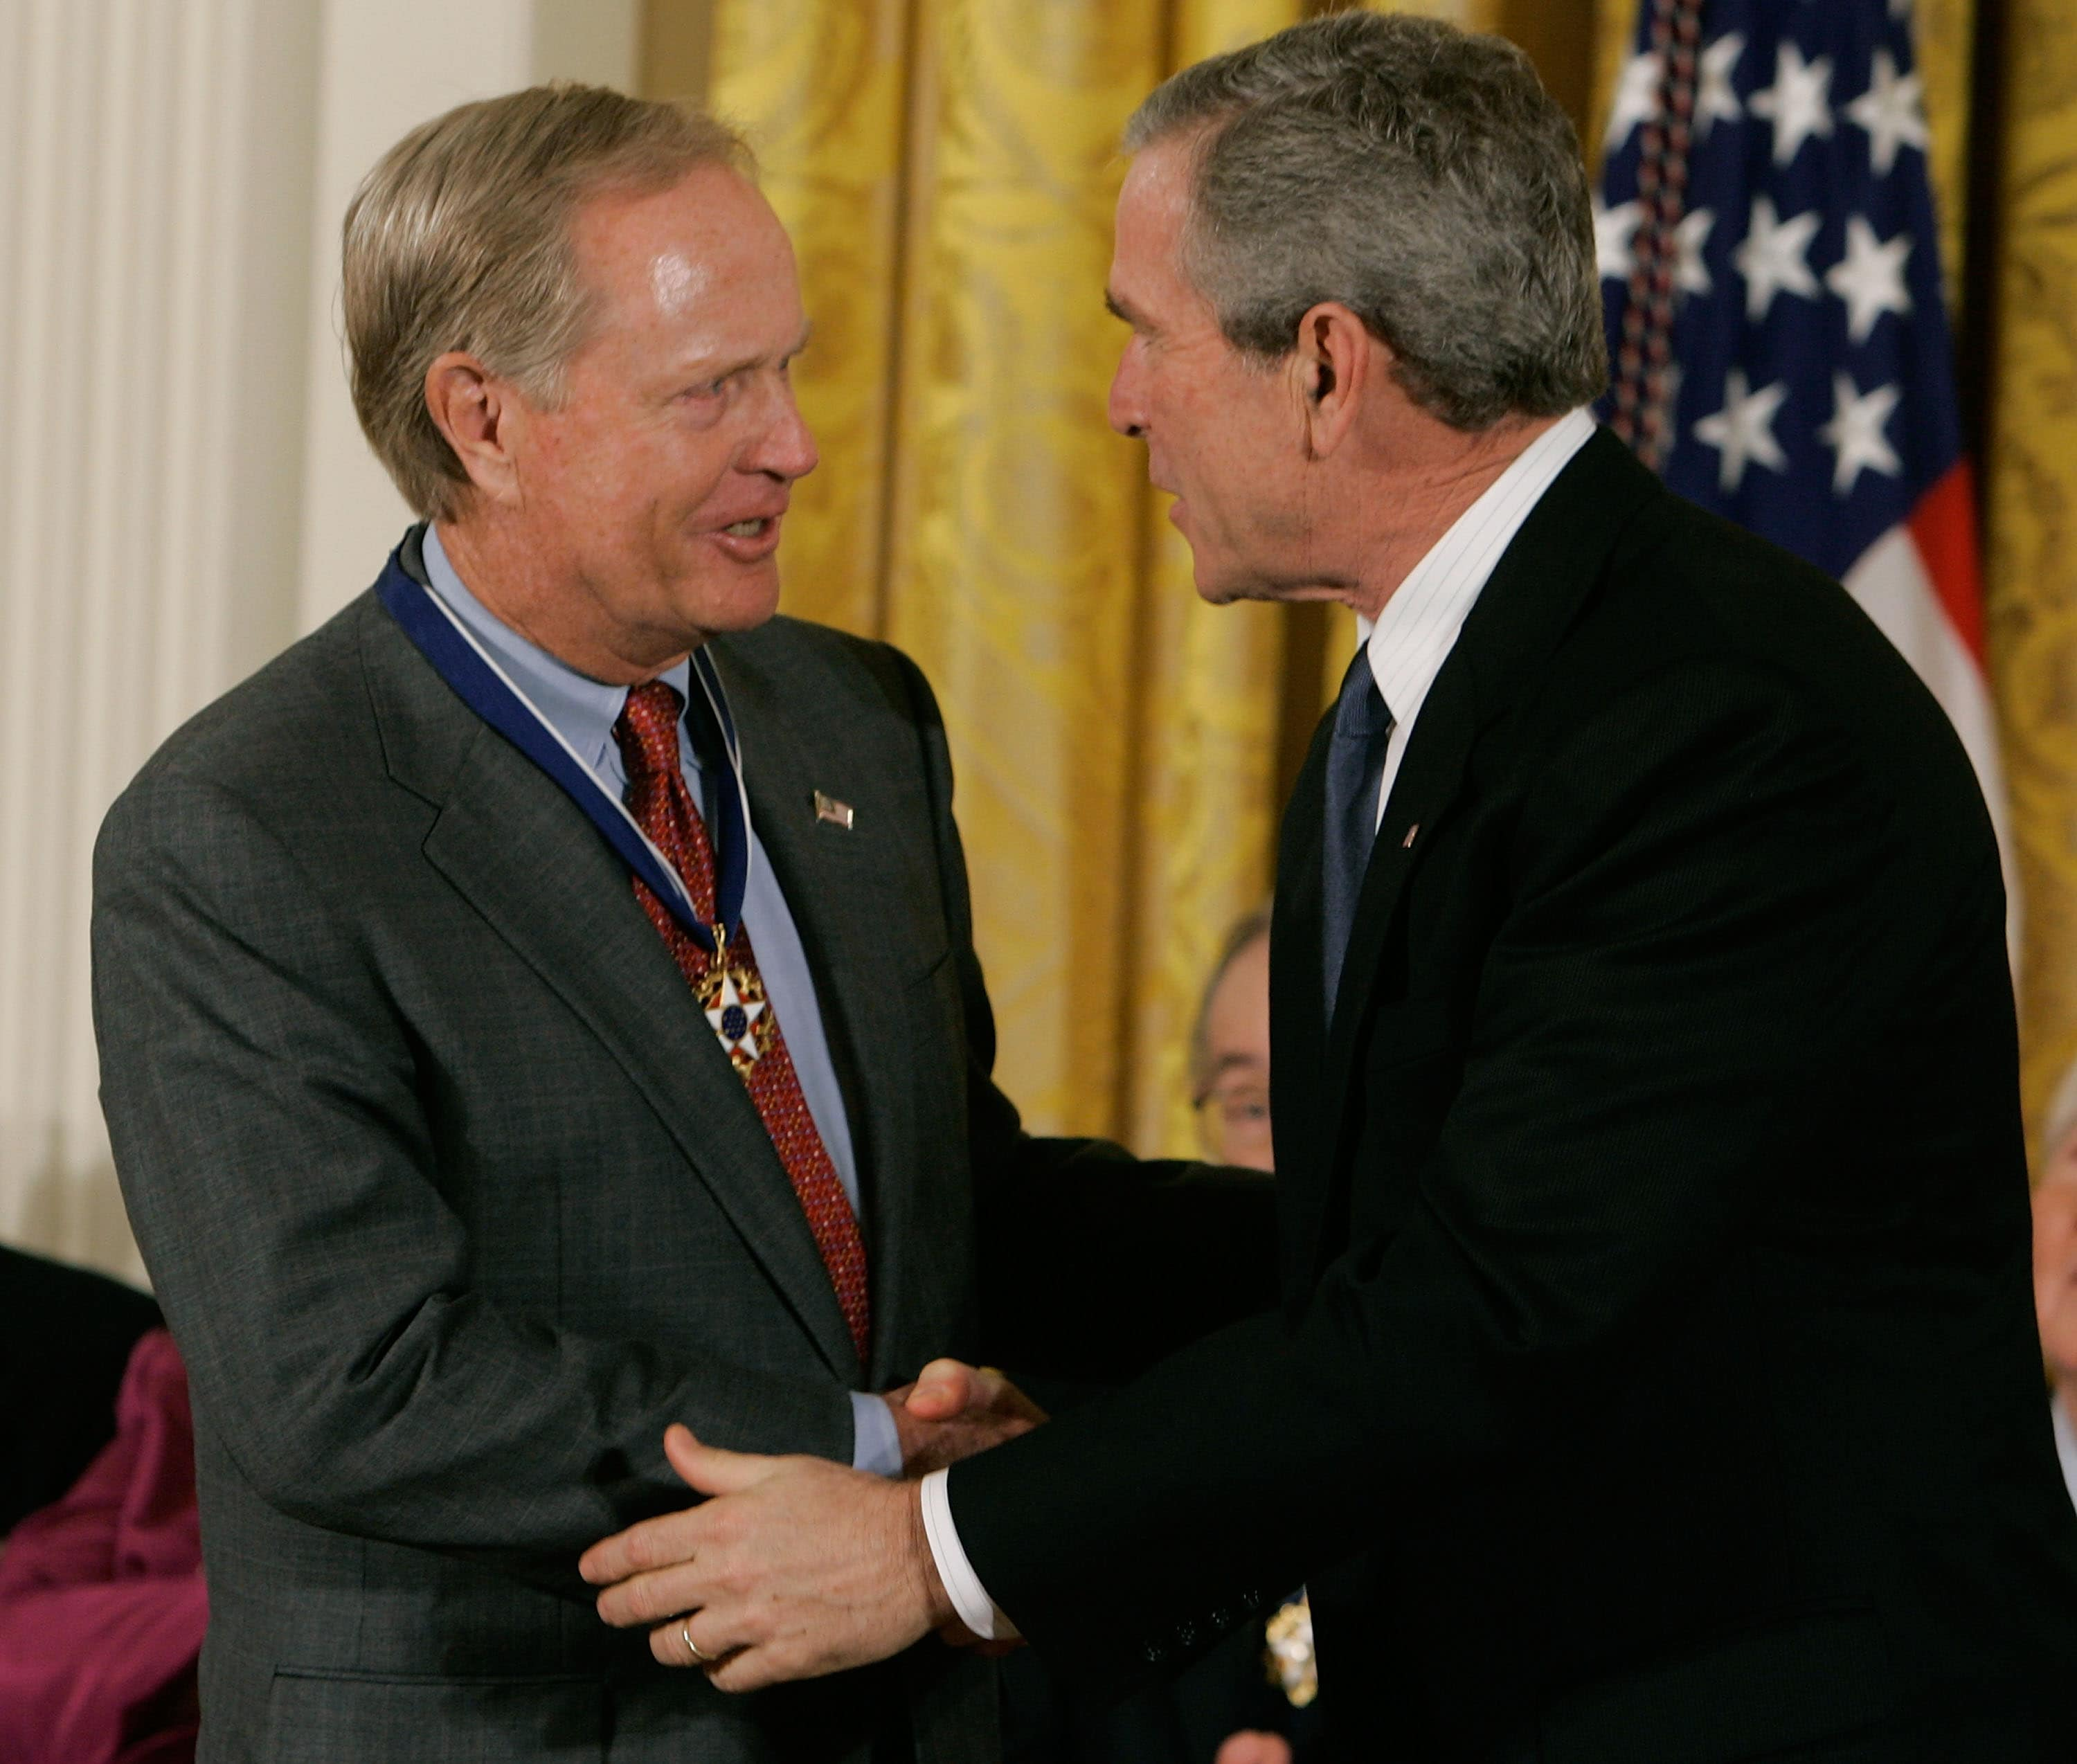 George W. Bush, Jack Nicklaus